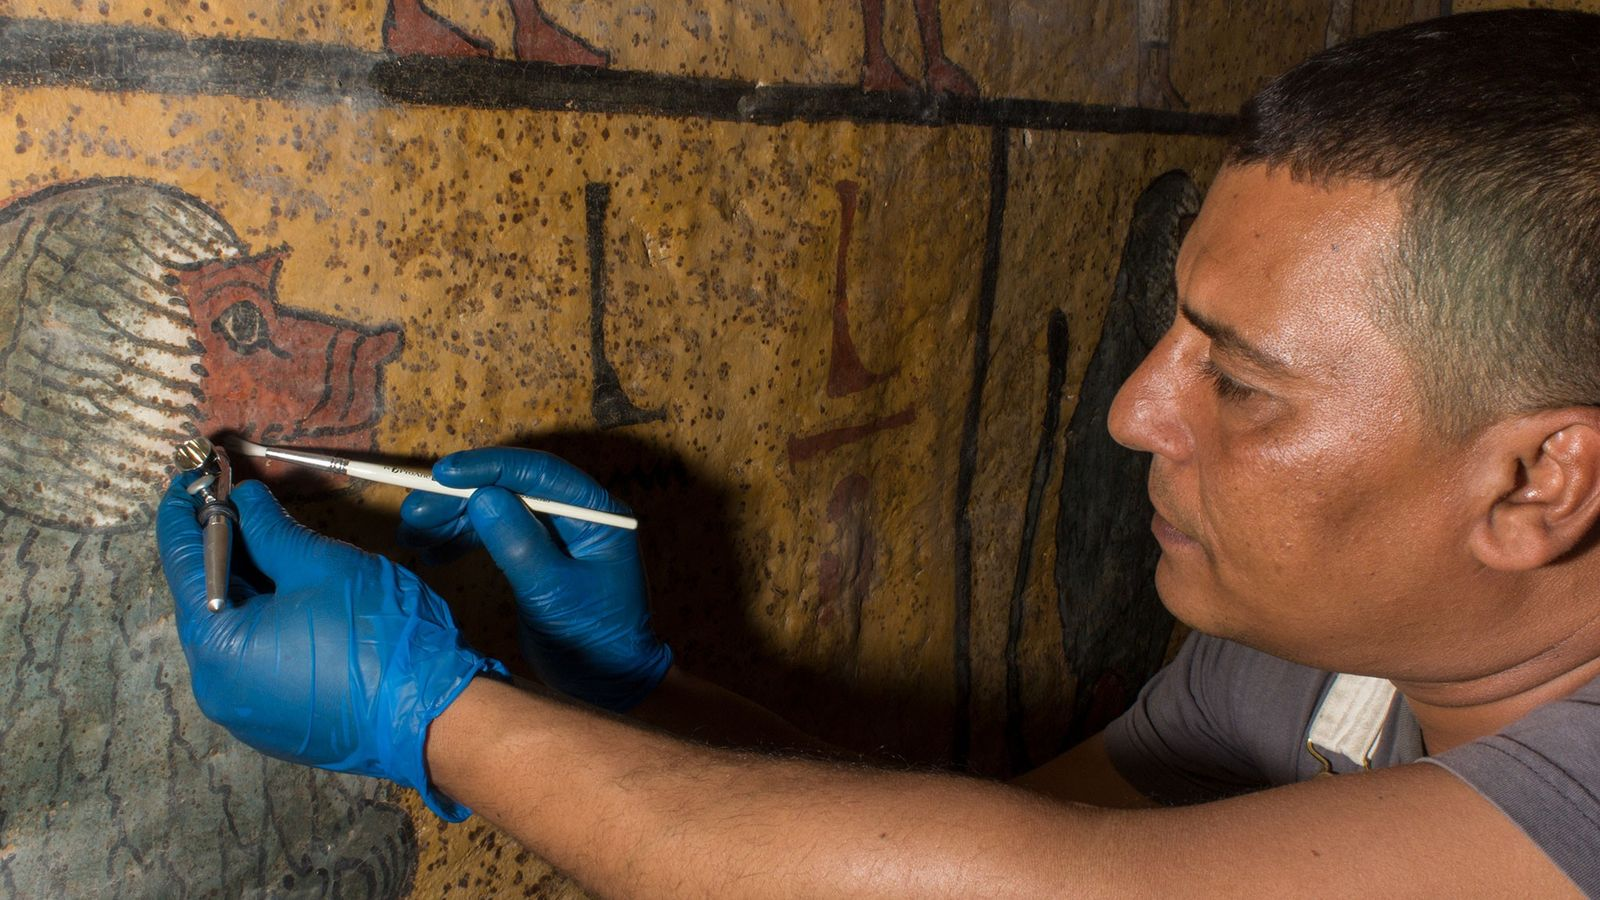 A conservator gently blows away sticky dust that has collected on the painted surfaces of Tutankhamun's ...